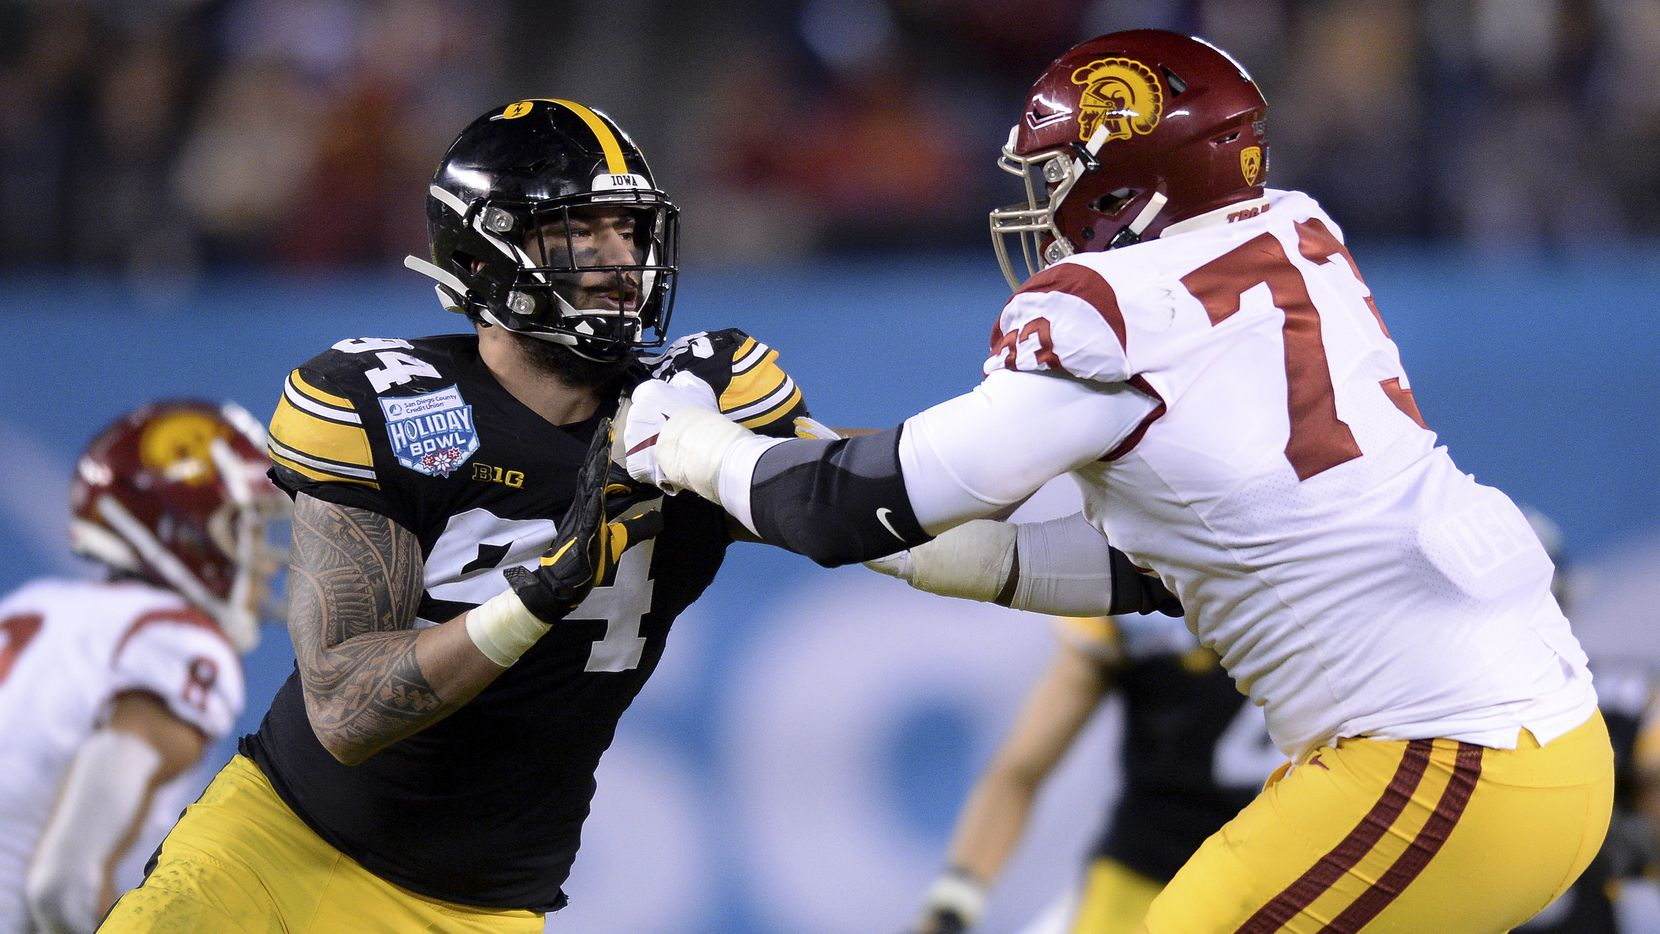 FILE - Iowa defensive end A.J. Epenesa (94) works against USC offensive tackle Austin Jackson (73) during the first half of the Holiday Bowl on Friday, Dec. 27, 2019, in San Diego. (AP Photo/Orlando Ramirez)